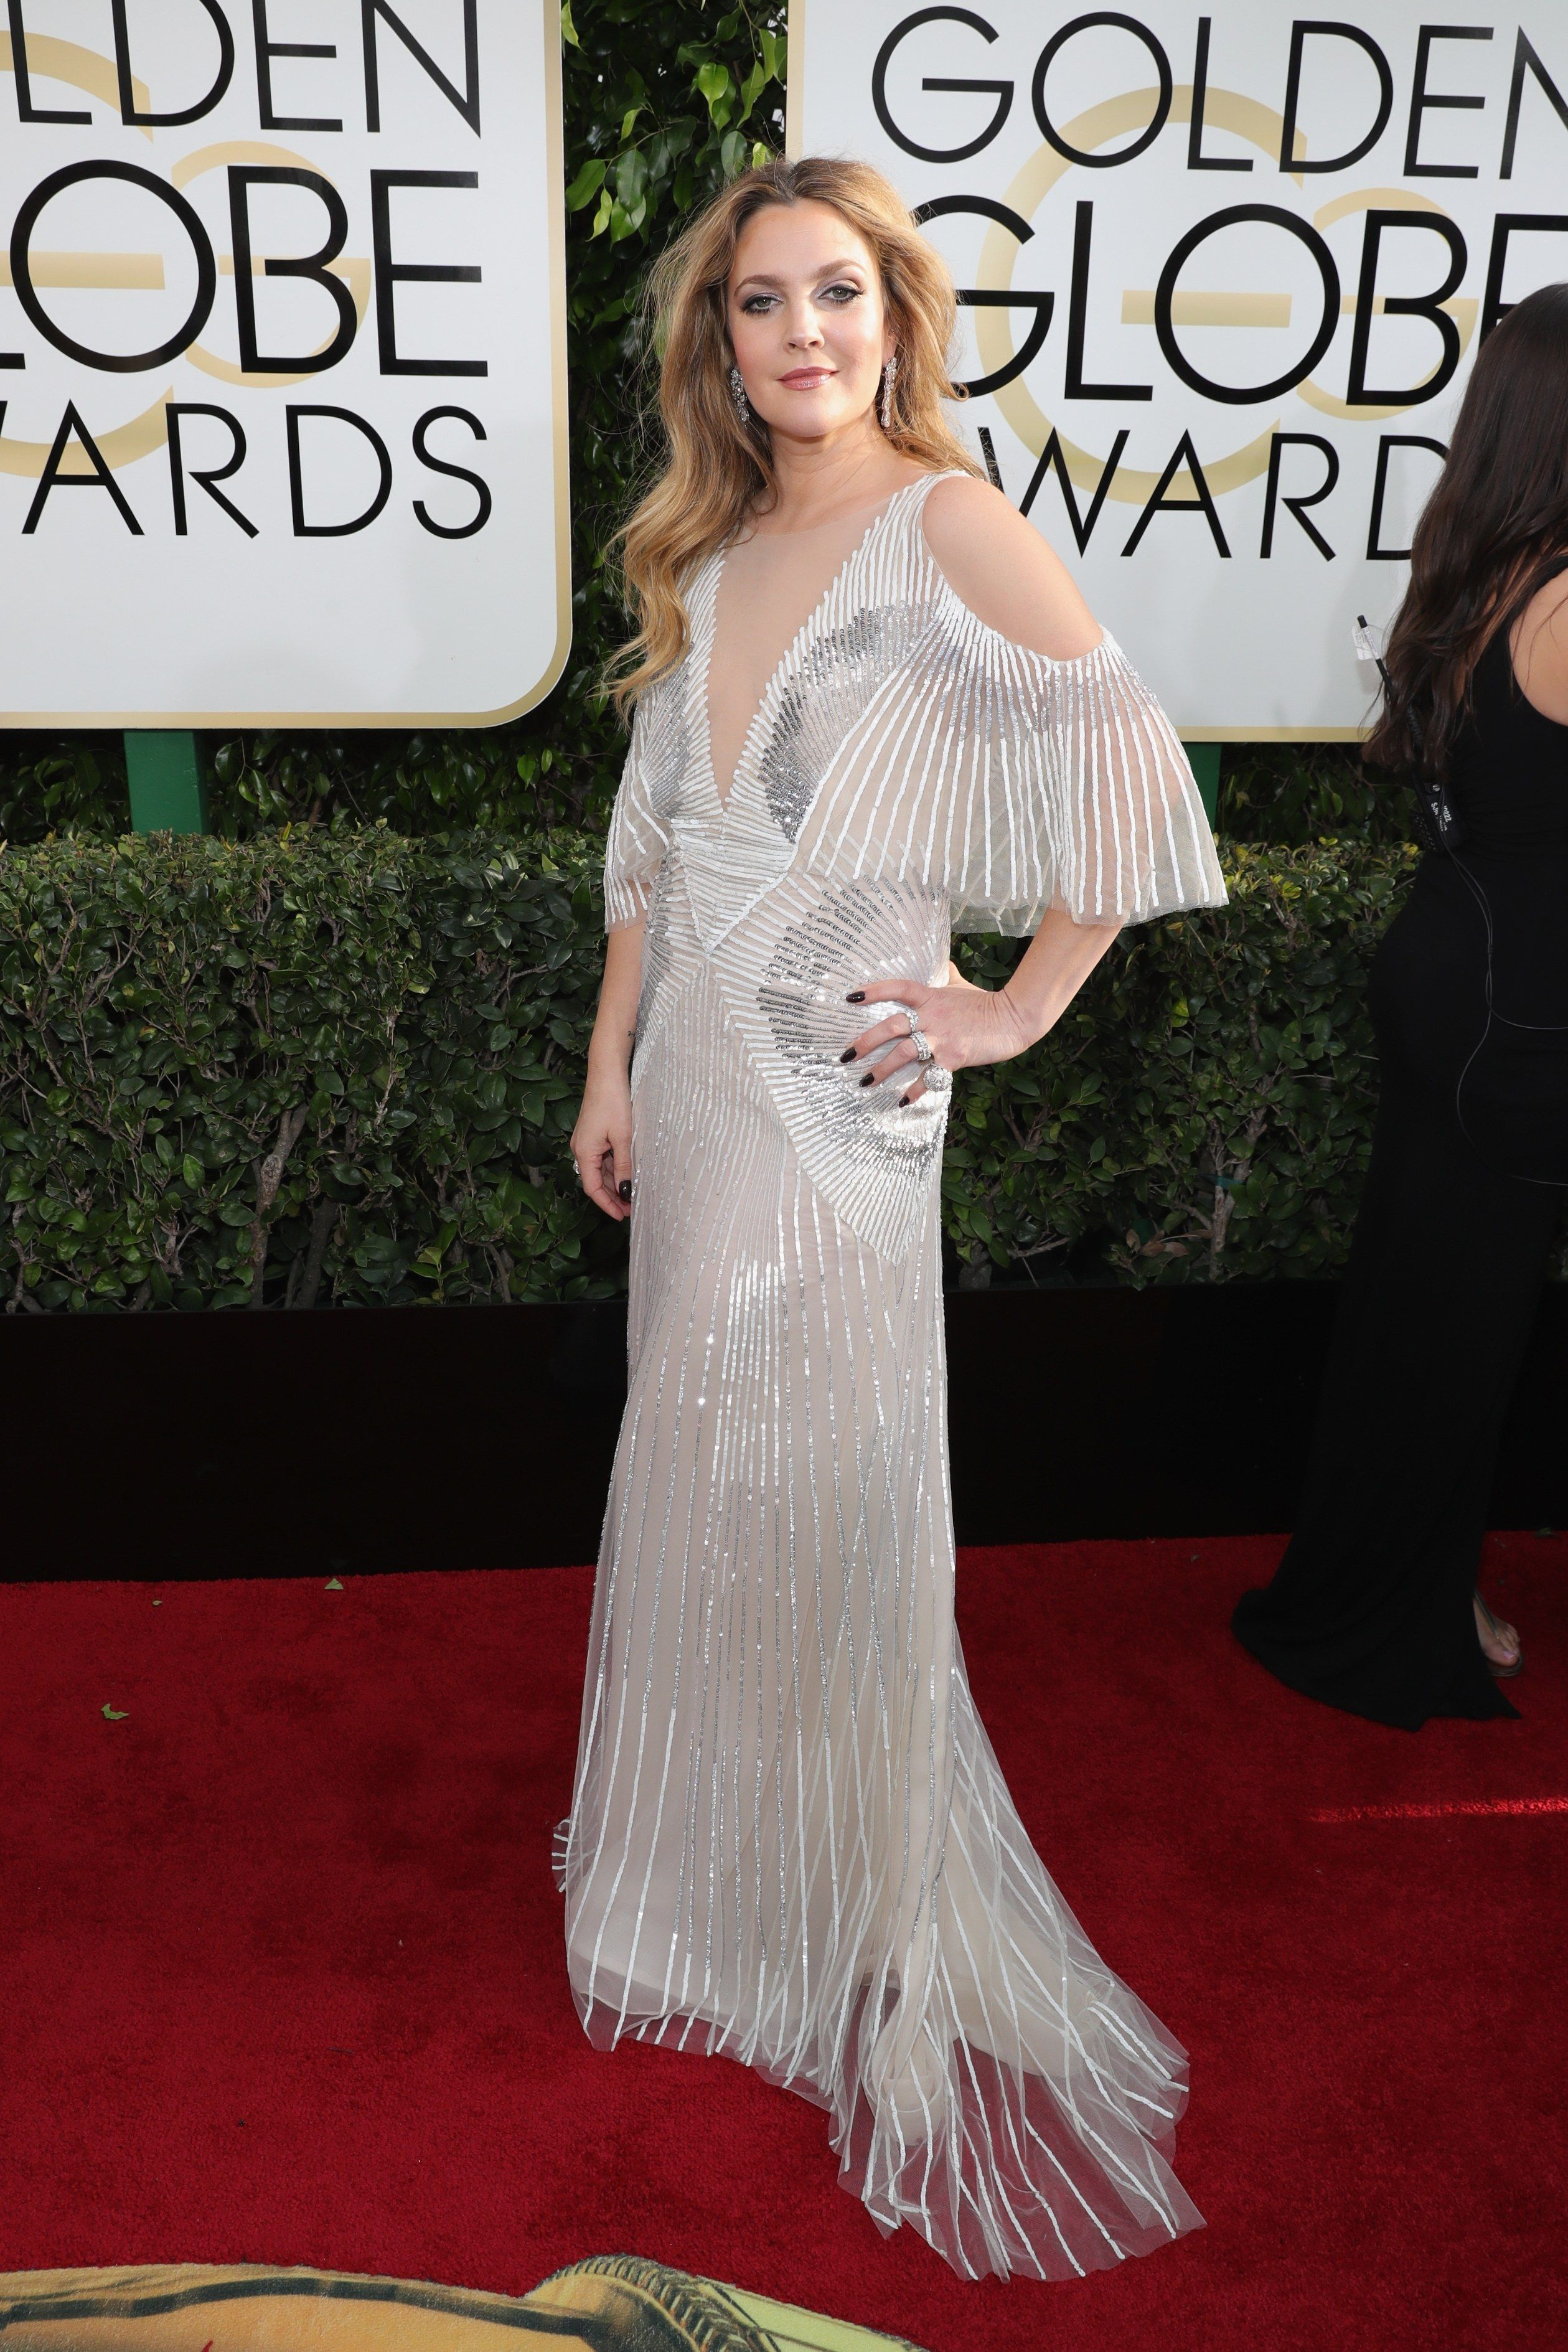 Golden Globes 2017 See What Everyone Wore On The Red Carpet Dresses Golden Globes 2017 Golden Globes Red Carpet